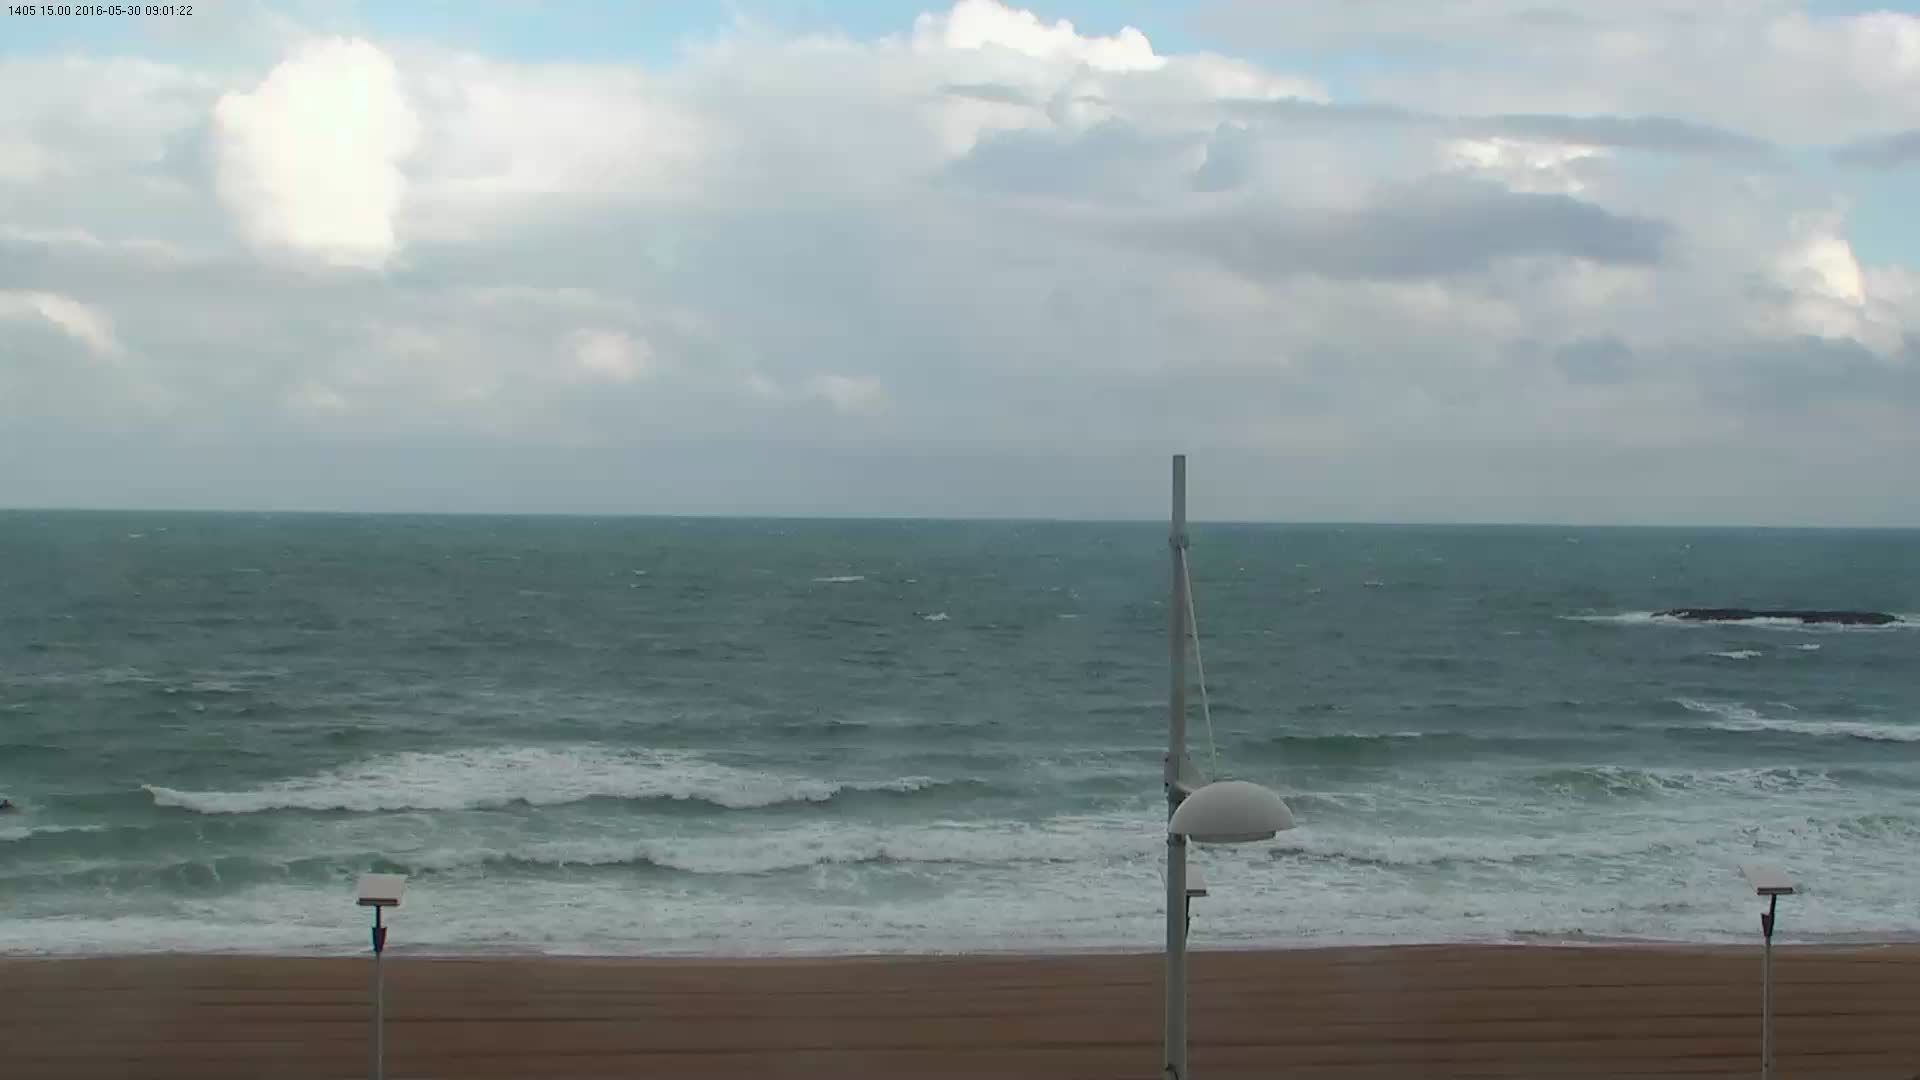 Latest webcam still for Biarritz Grande Plage